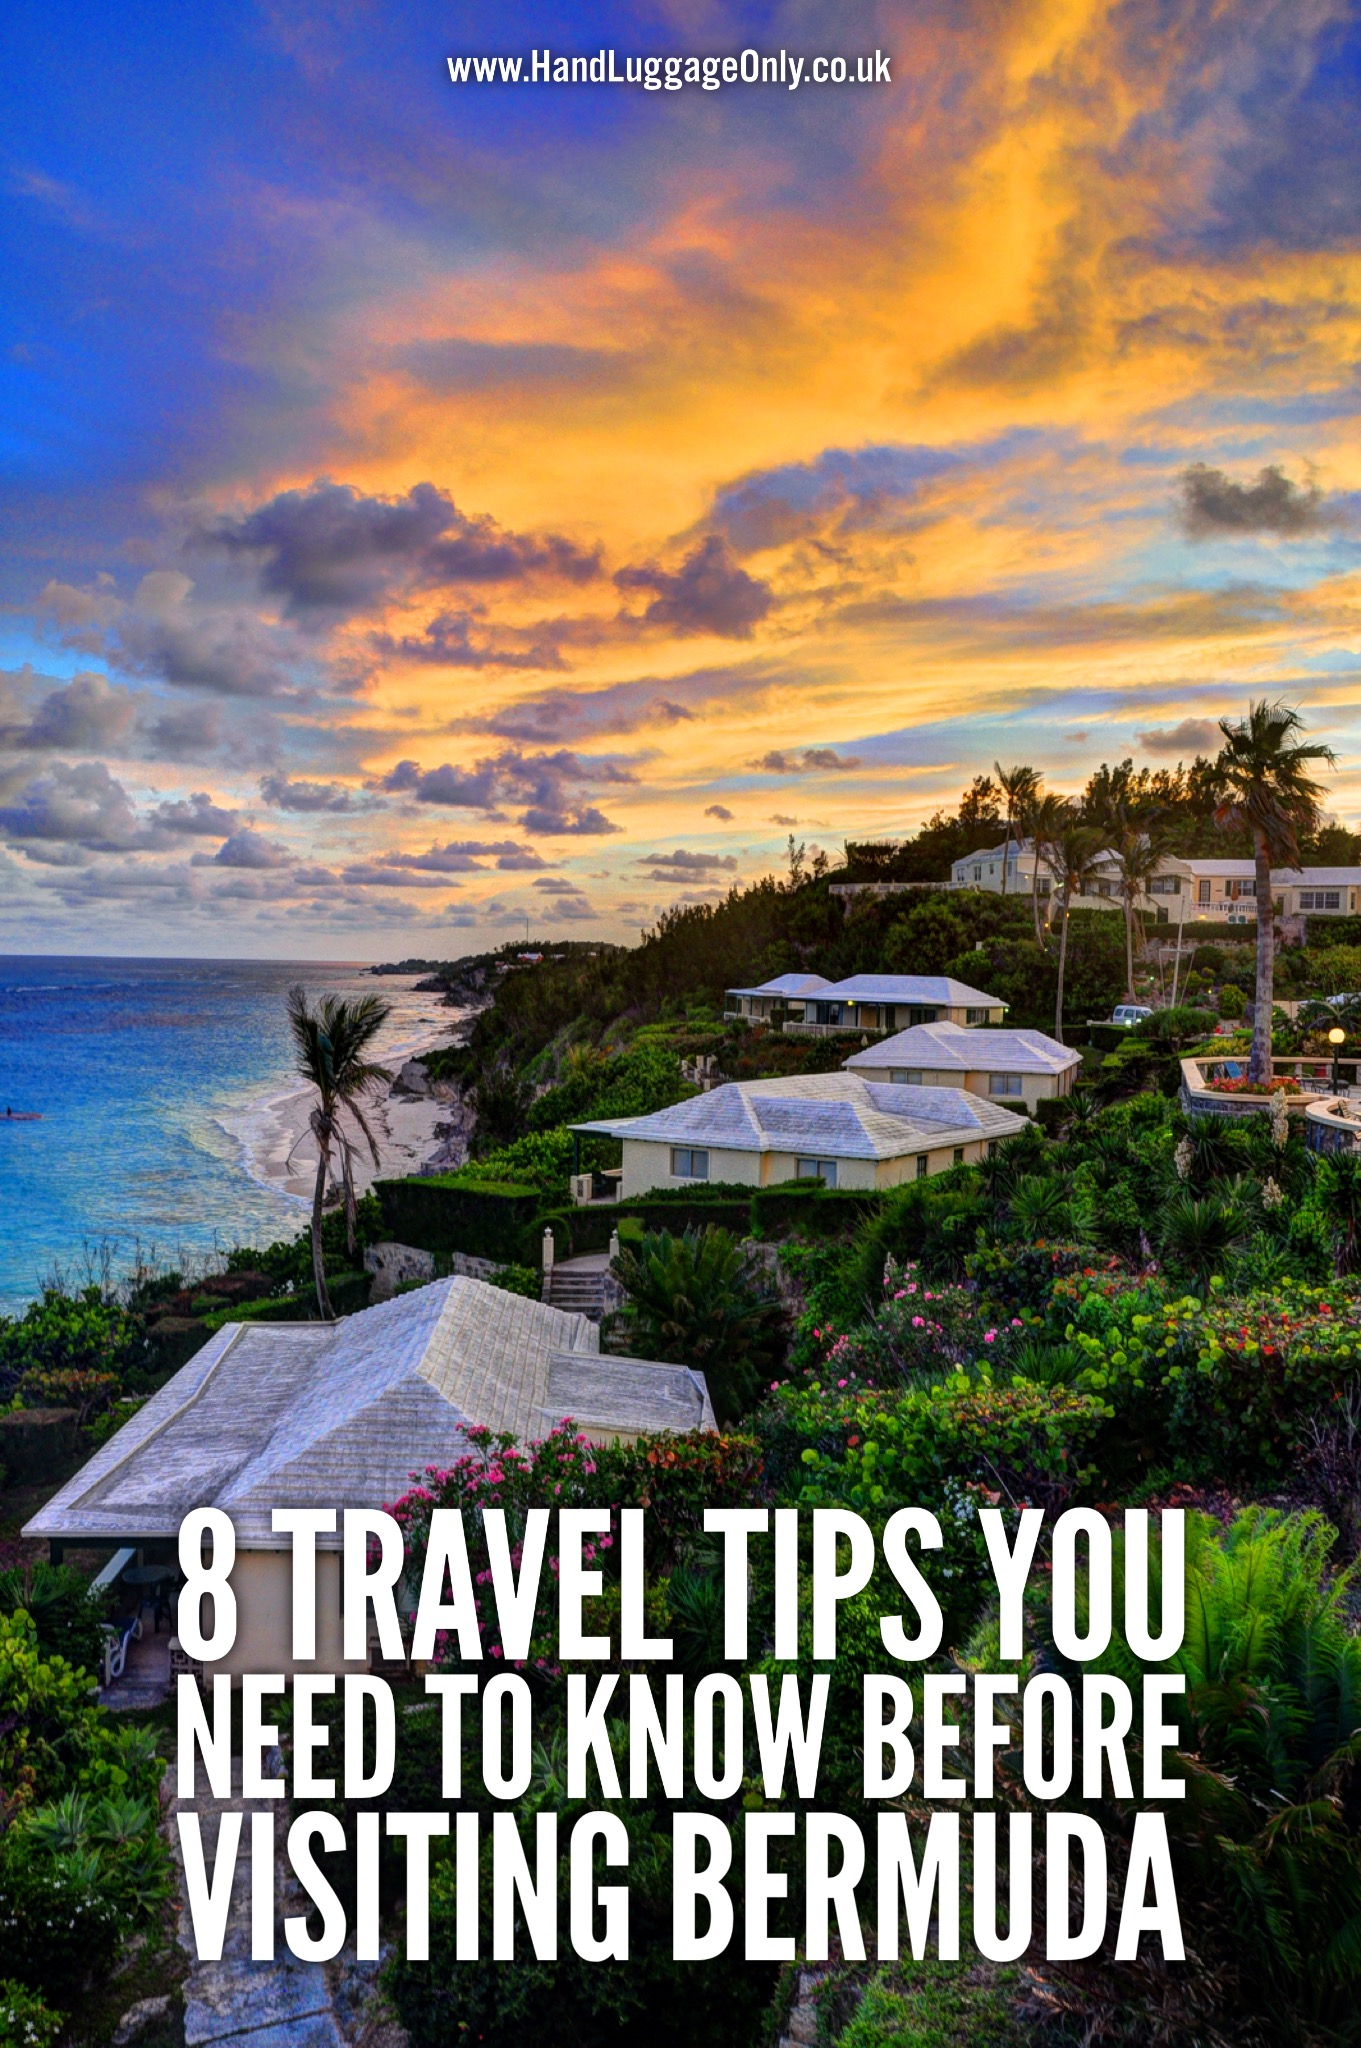 8 Travel Tips You Need To Know Before Visiting Bermuda (1)